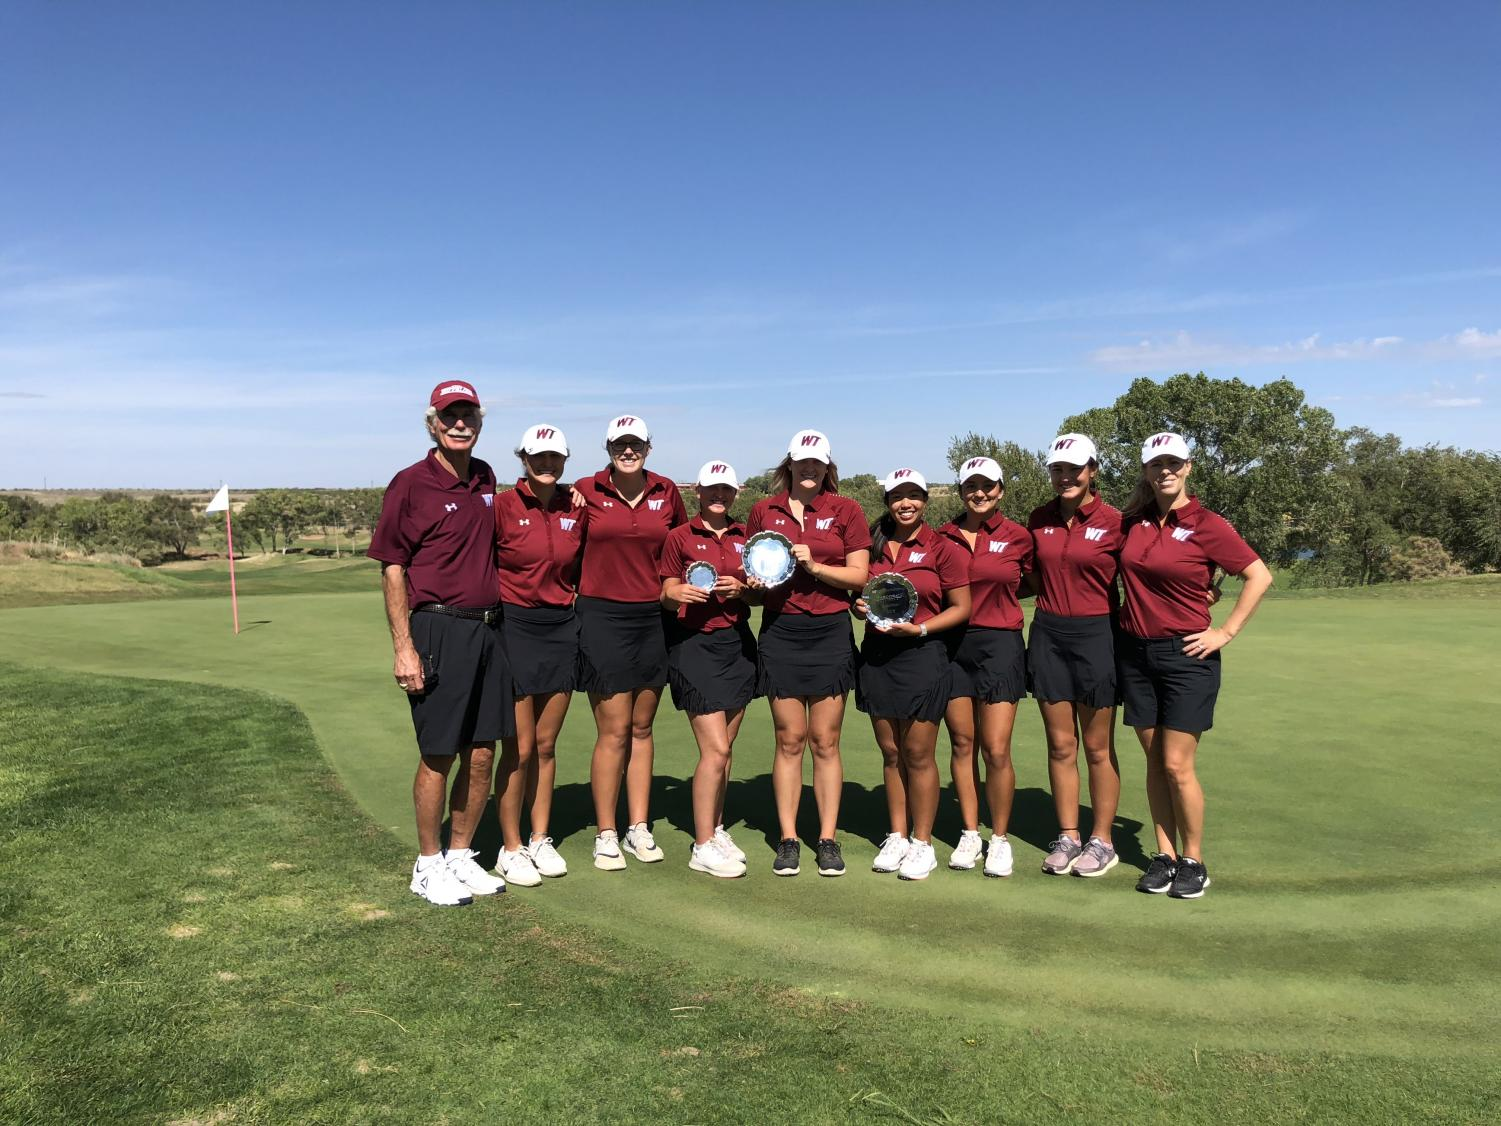 The Lady Buffs placed first in the WTAMU Lady Buff Invitational in Amarillo, Texas.